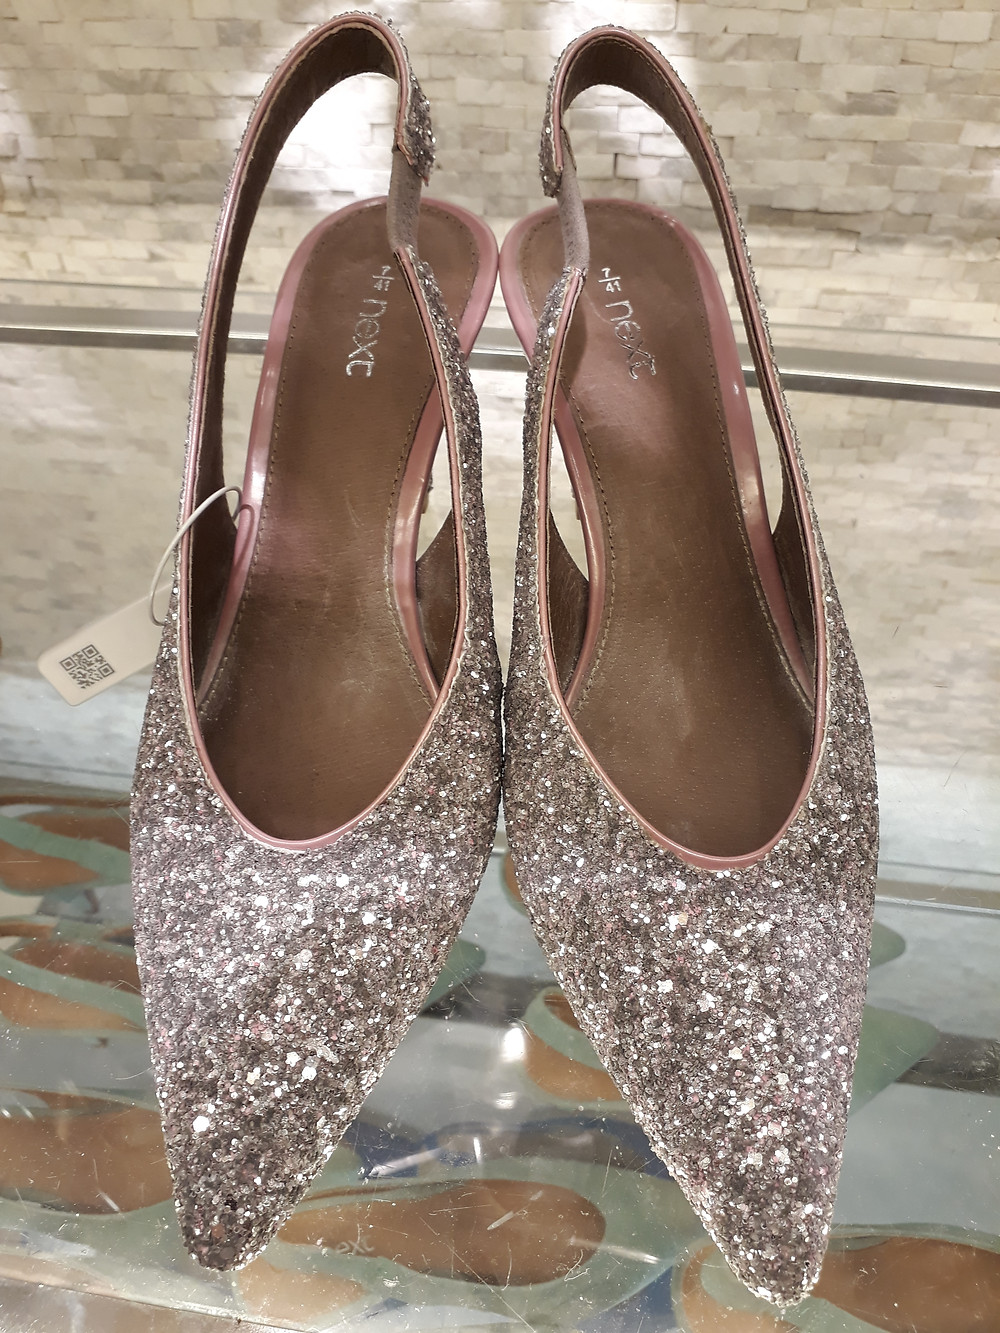 Sling back, sparkle finish (shoes from Next)